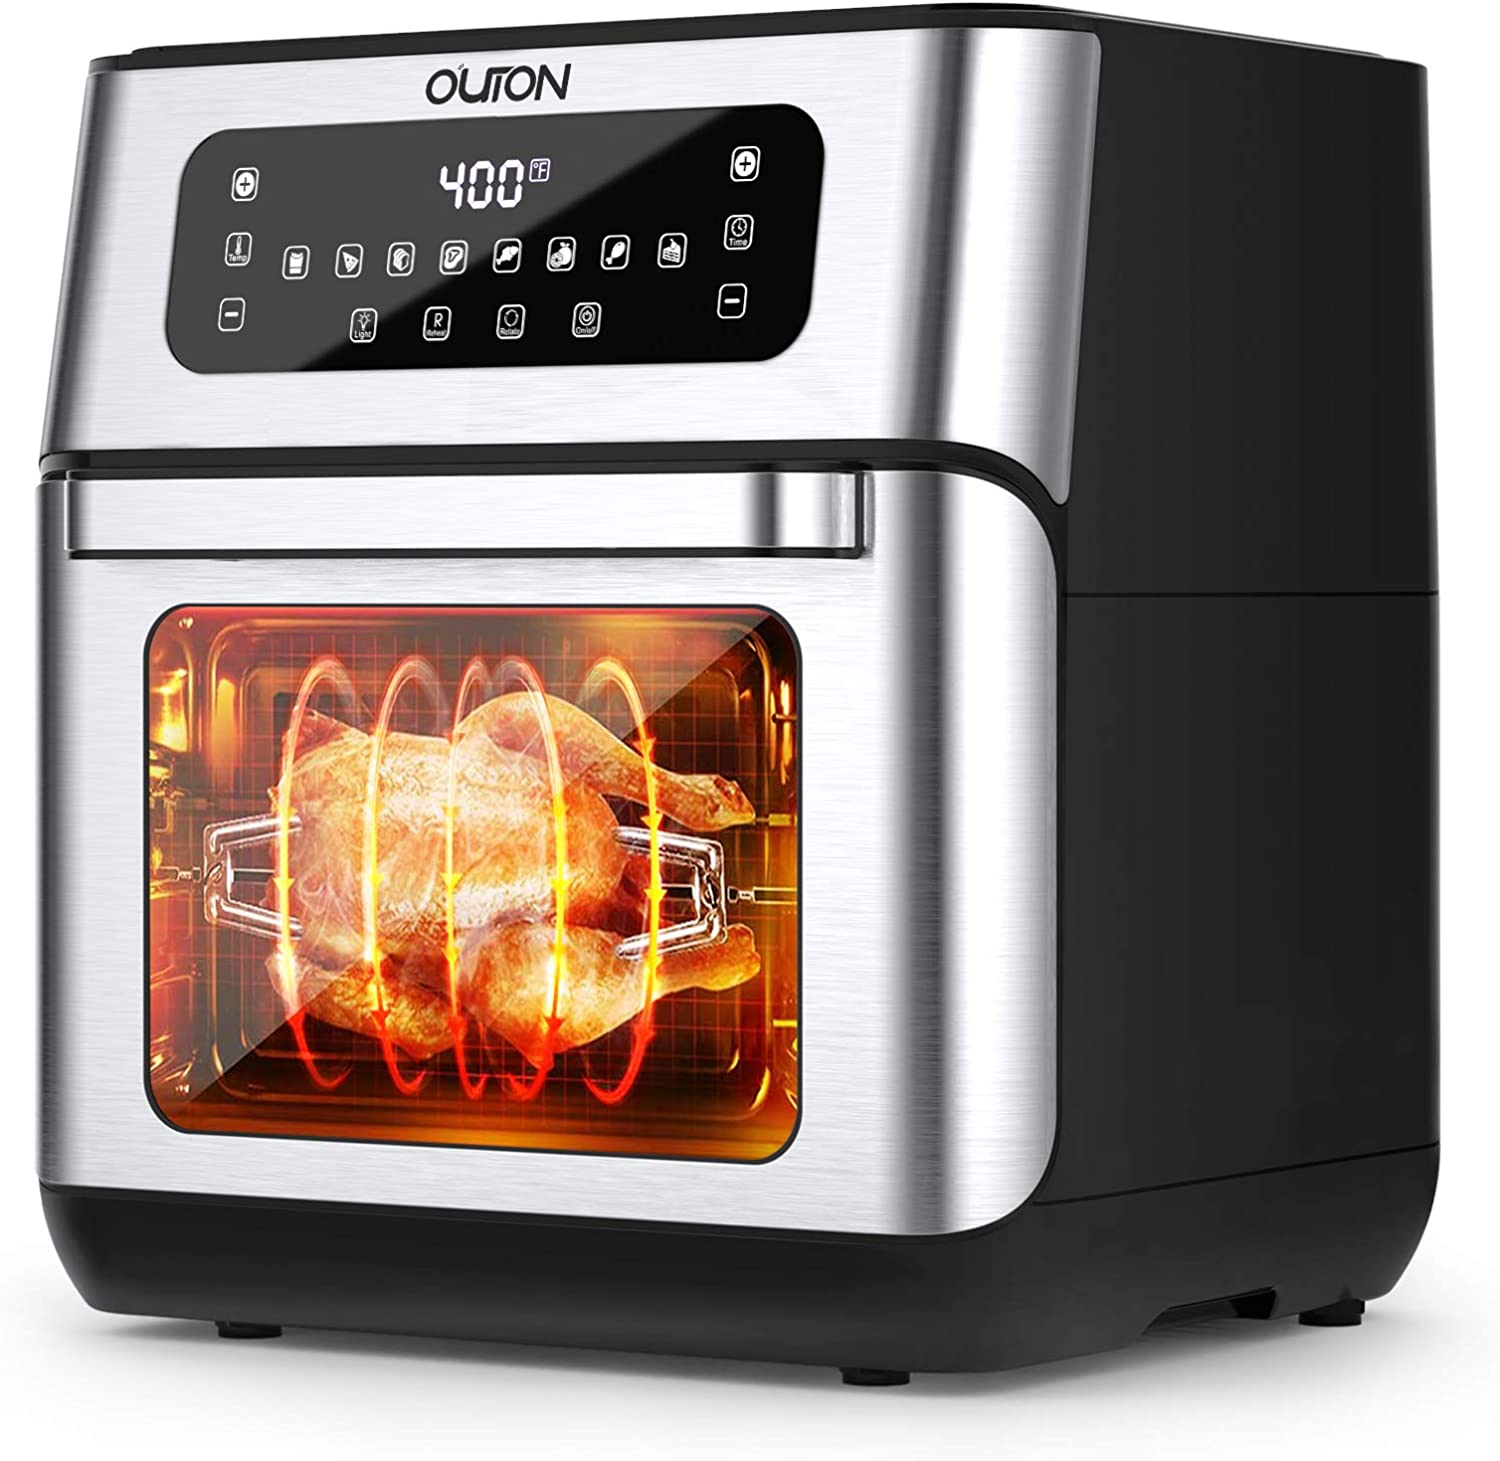 Outon 8-in-1 Air Fryer Toaster Oven 10.6 Quart, 1500W Convection Roaster with Rotisserie, Dehydrator, Pizza, Bakes & Reheats Function, Digital LCD Touch Screen, Auto Shut Off, Nonstick Easy Clean